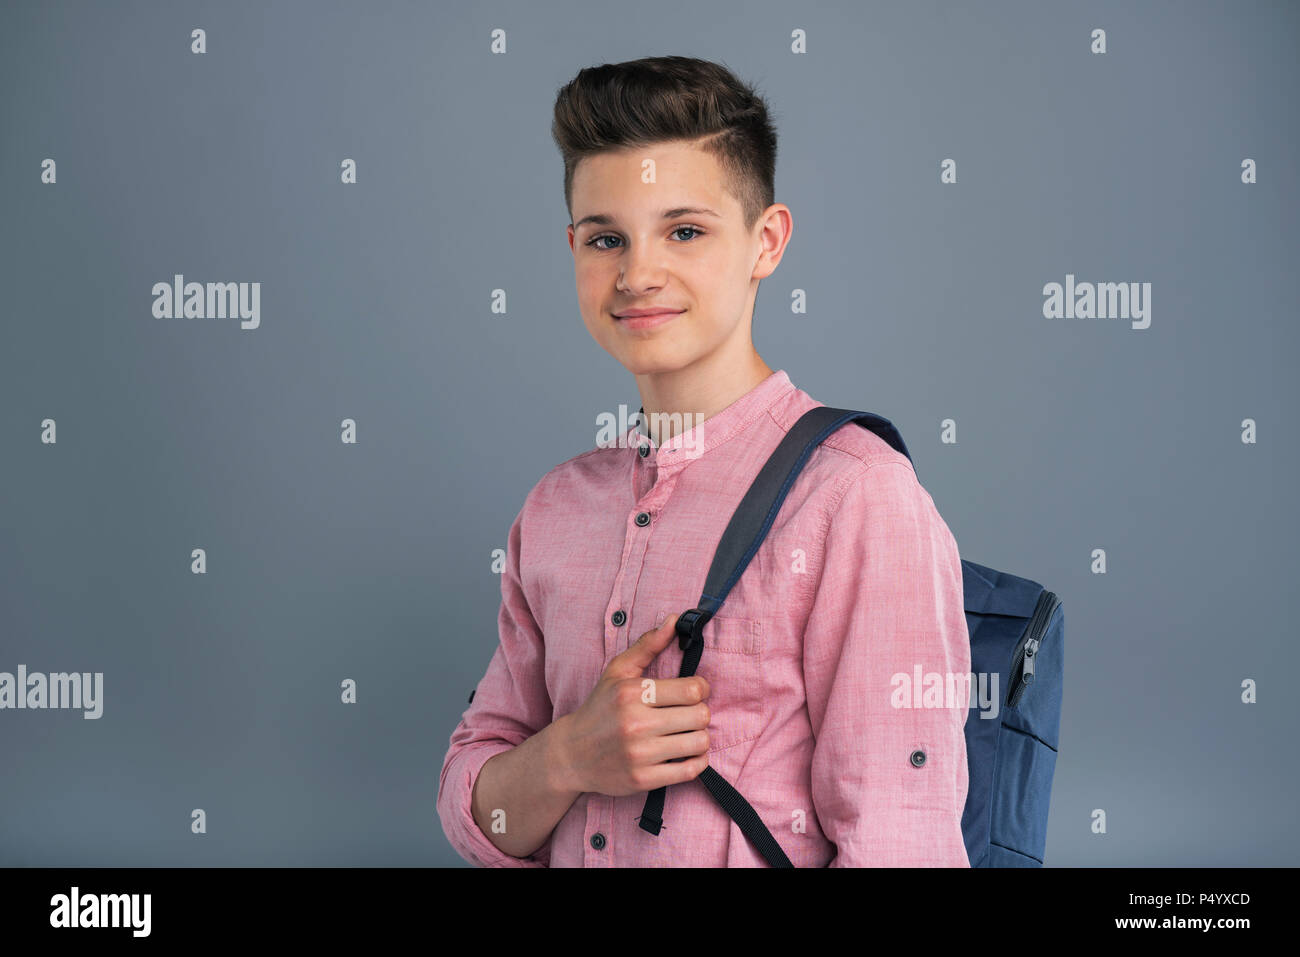 Pleasant teenage boy posing with a backpack - Stock Image